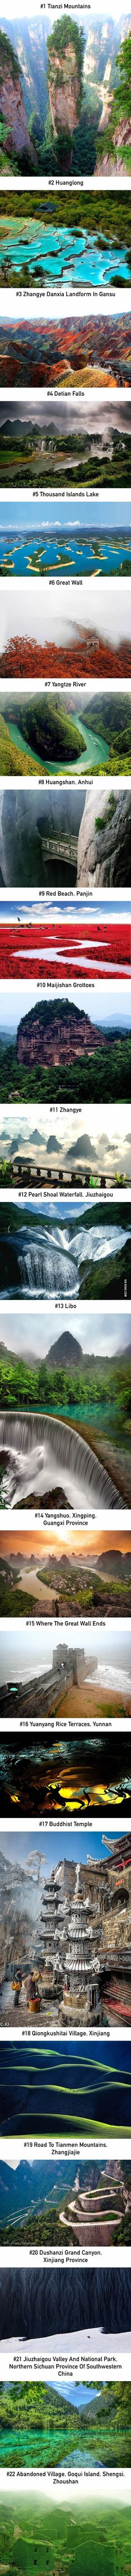 22 Reasons Why You Should Visit China - 9GAG More